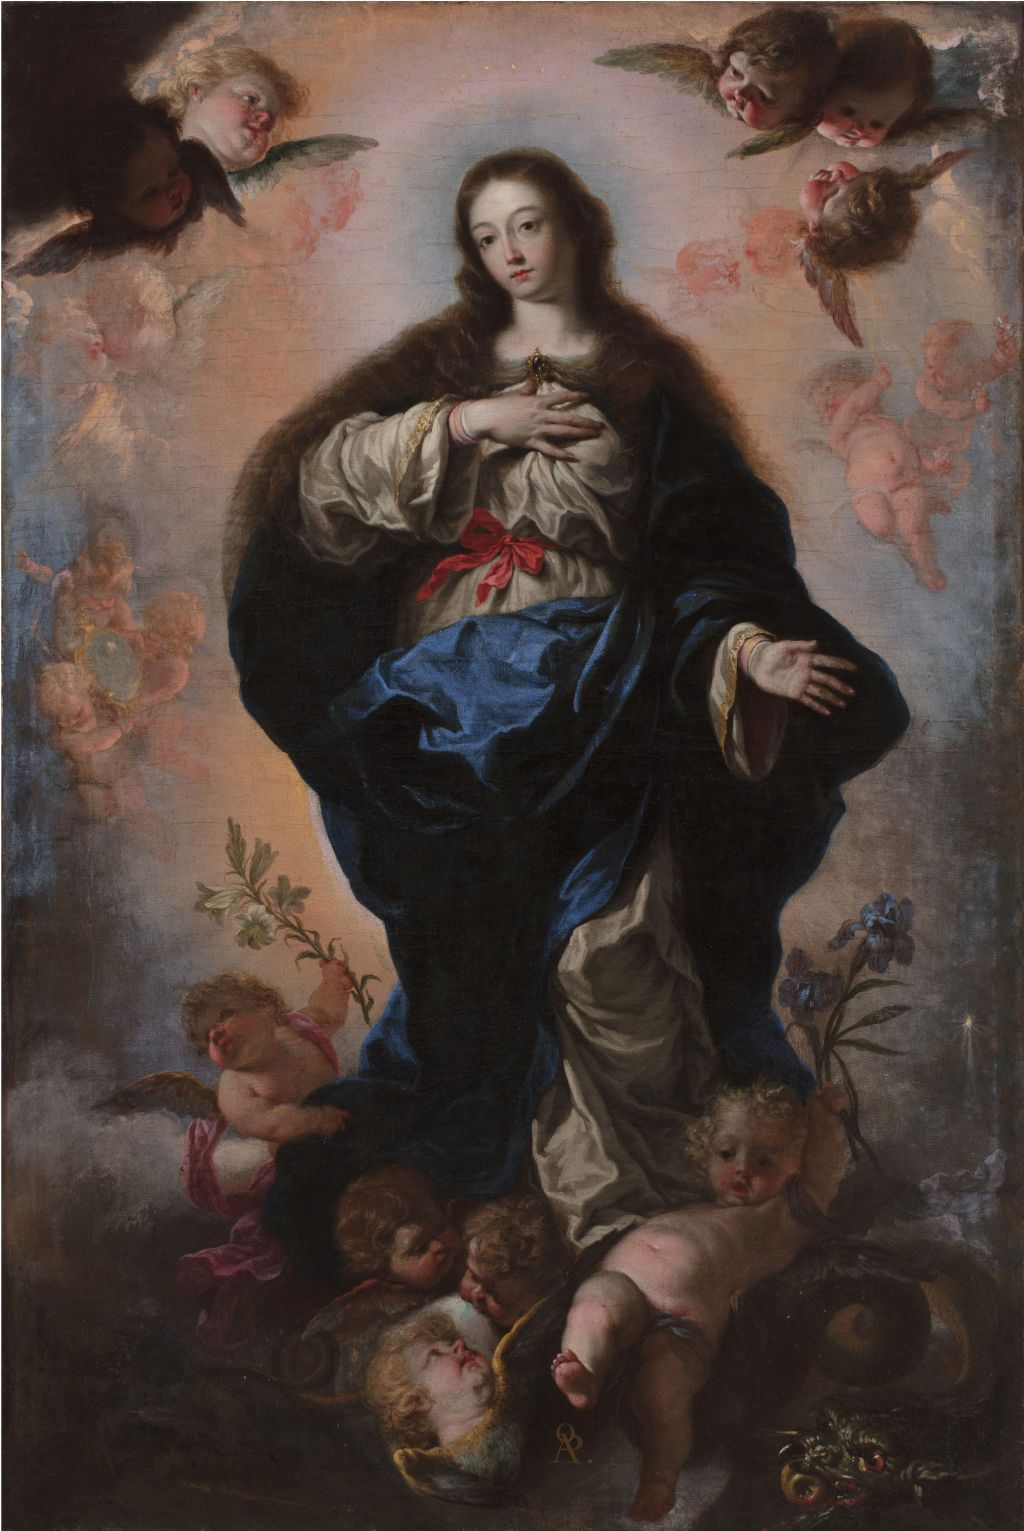 Immaculate Conception, Antonio Palomino y Velasco